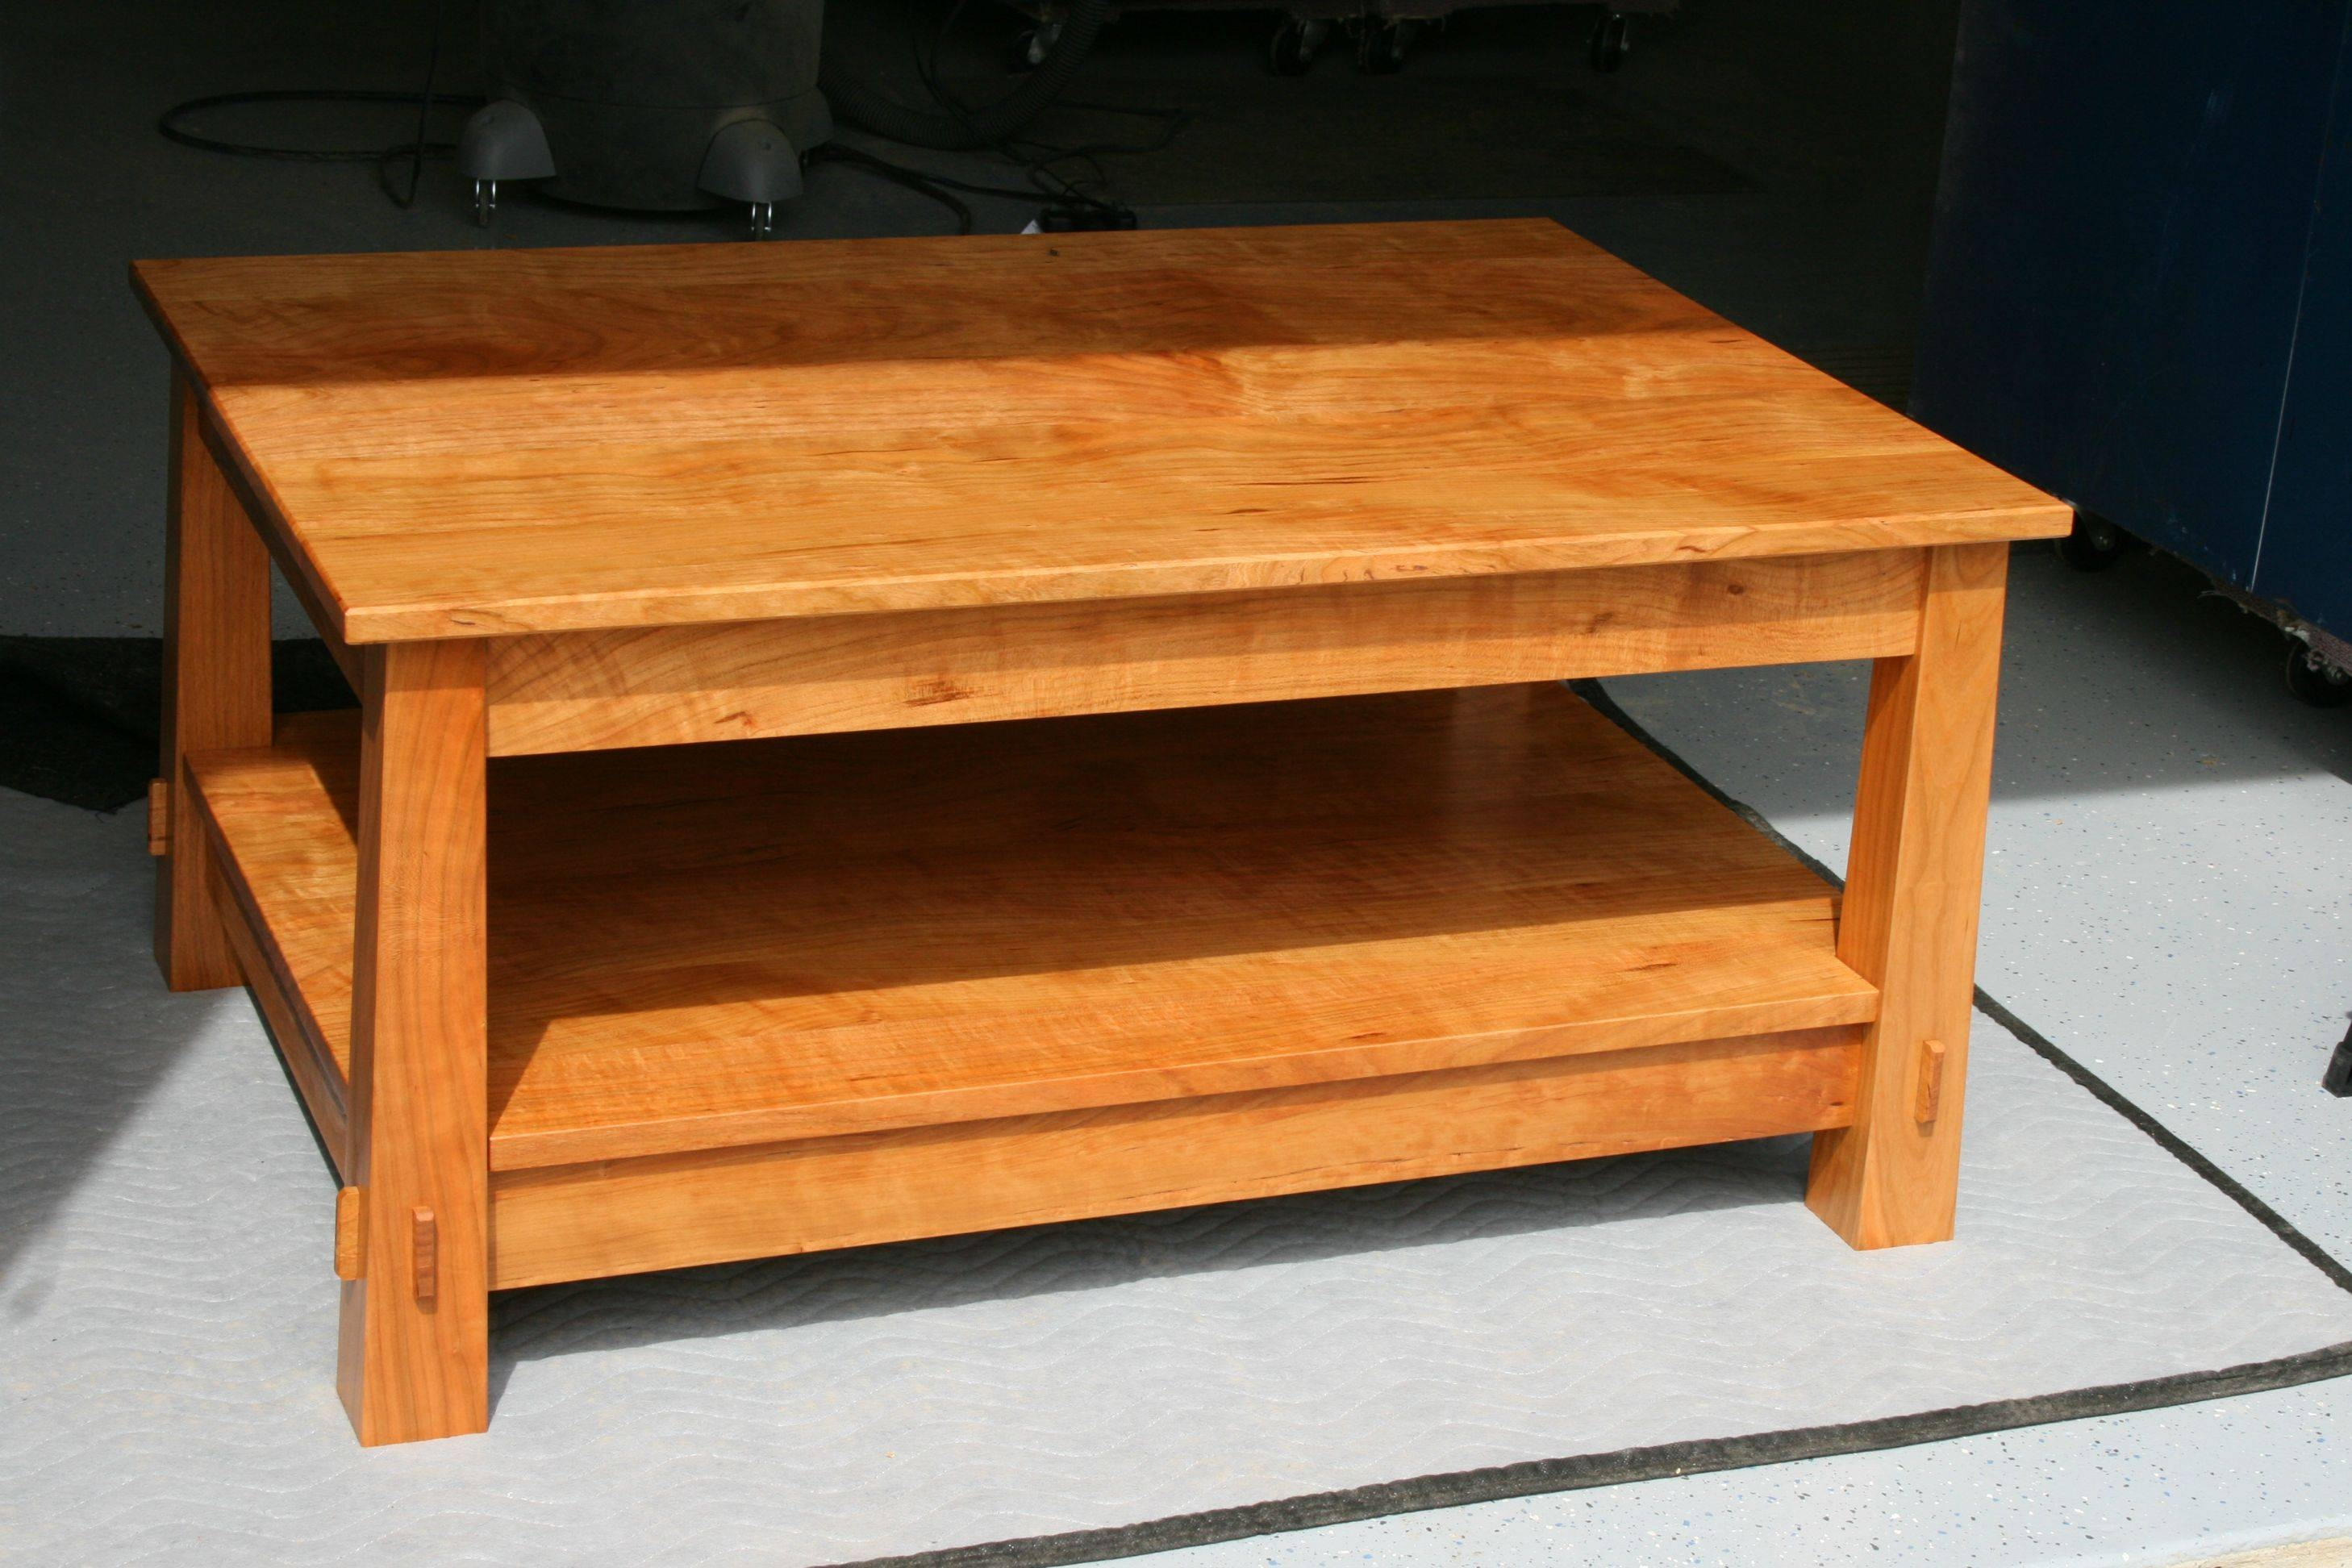 Popular Of Handmade Coffee Table With Handmade Reclaimed Wood regarding Handmade Wooden Coffee Tables (Image 12 of 15)